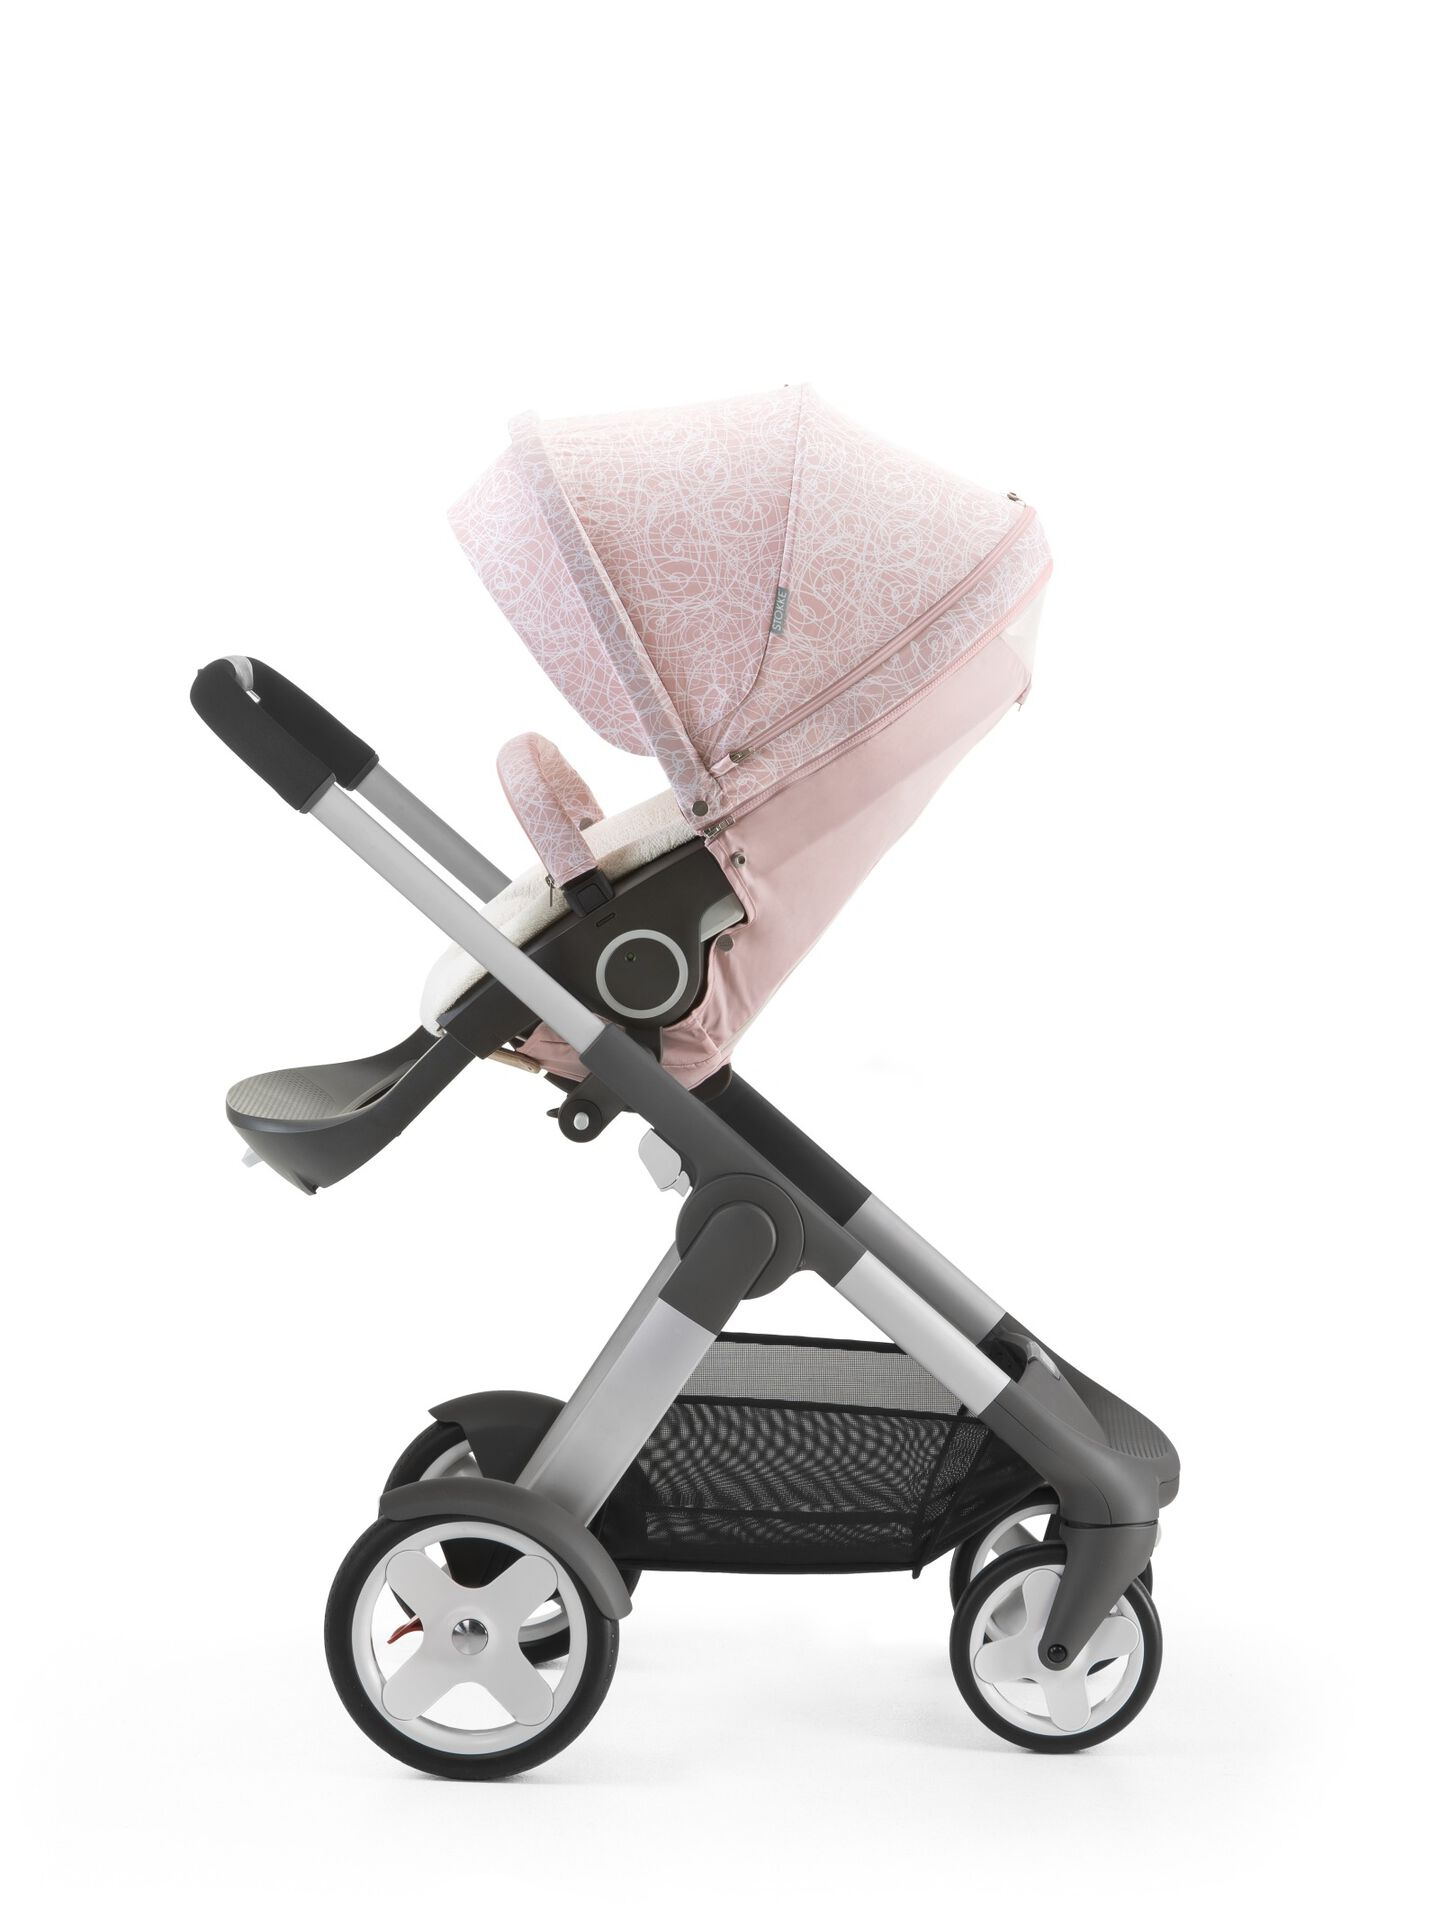 Stokke® Crusi™ with Stokke® Stroller Summer Kit Scribble Salty Blue.